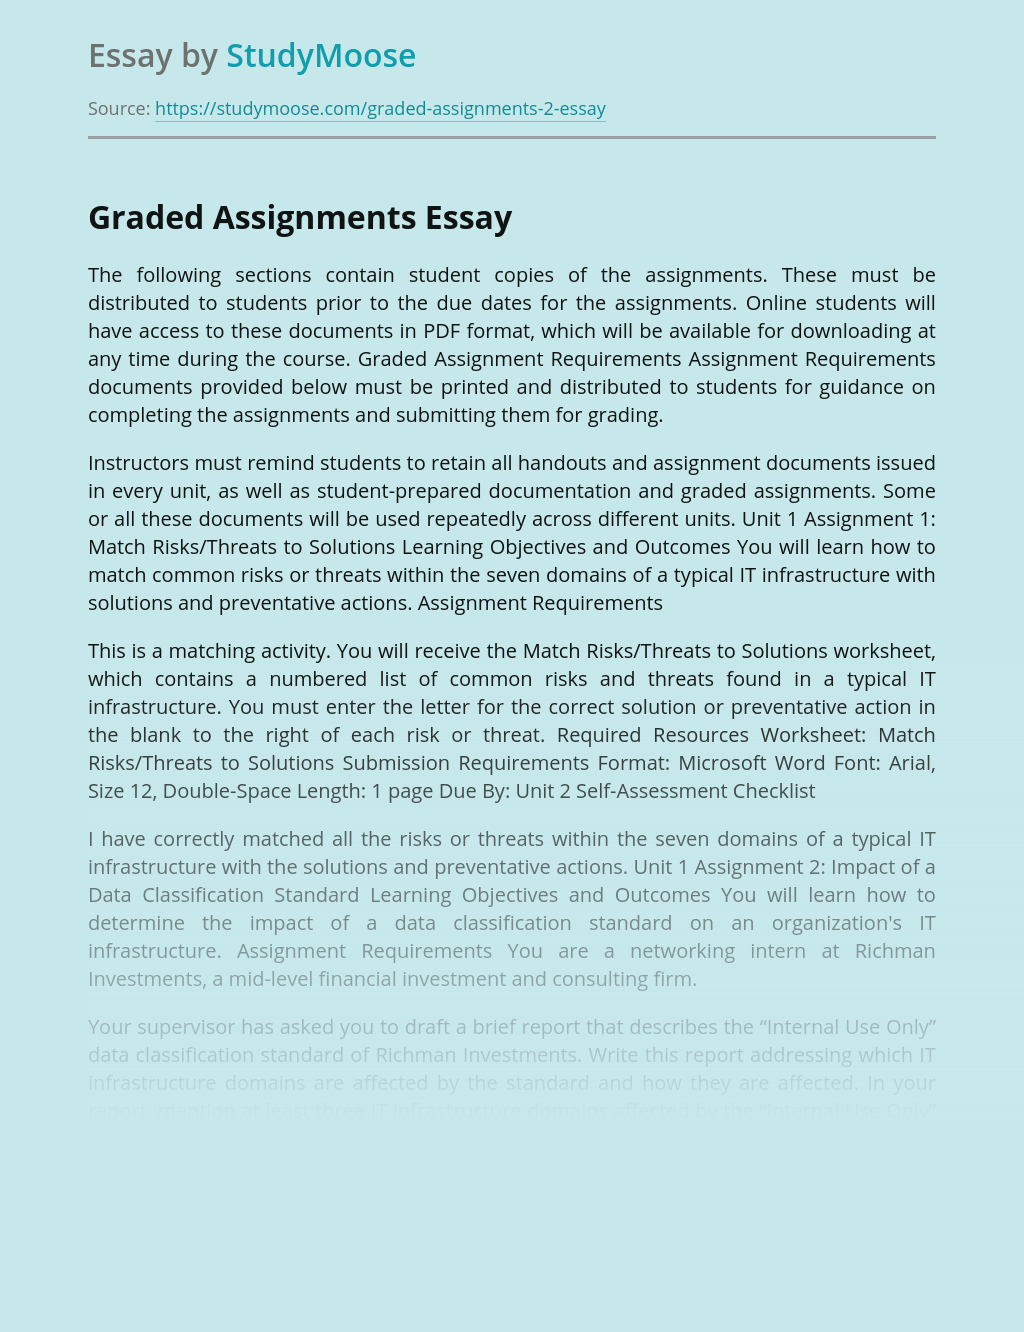 Graded Assignments for Students